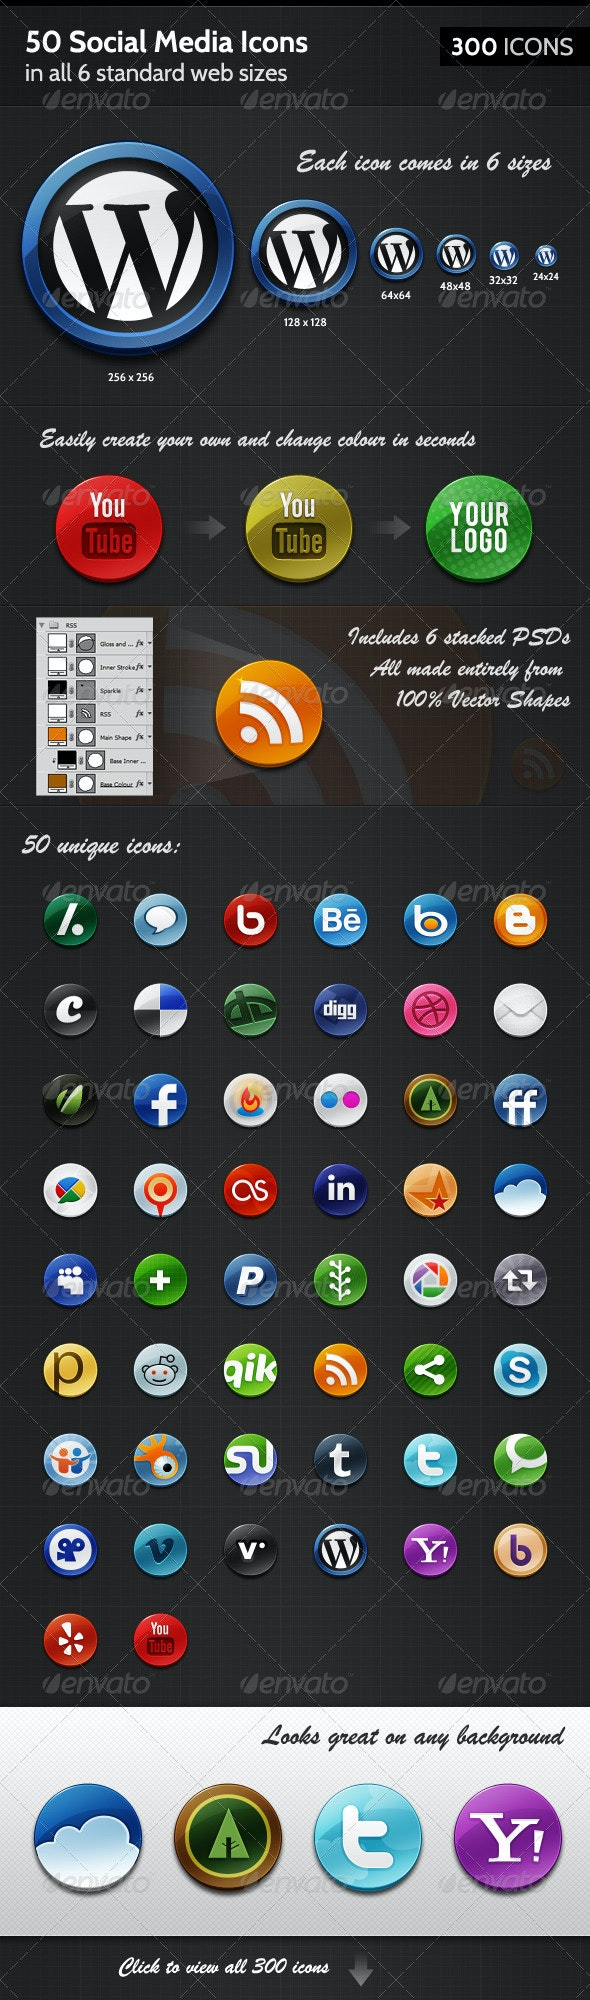 50 Badge-like Social Media Icons, in 6 sizes - Web Icons